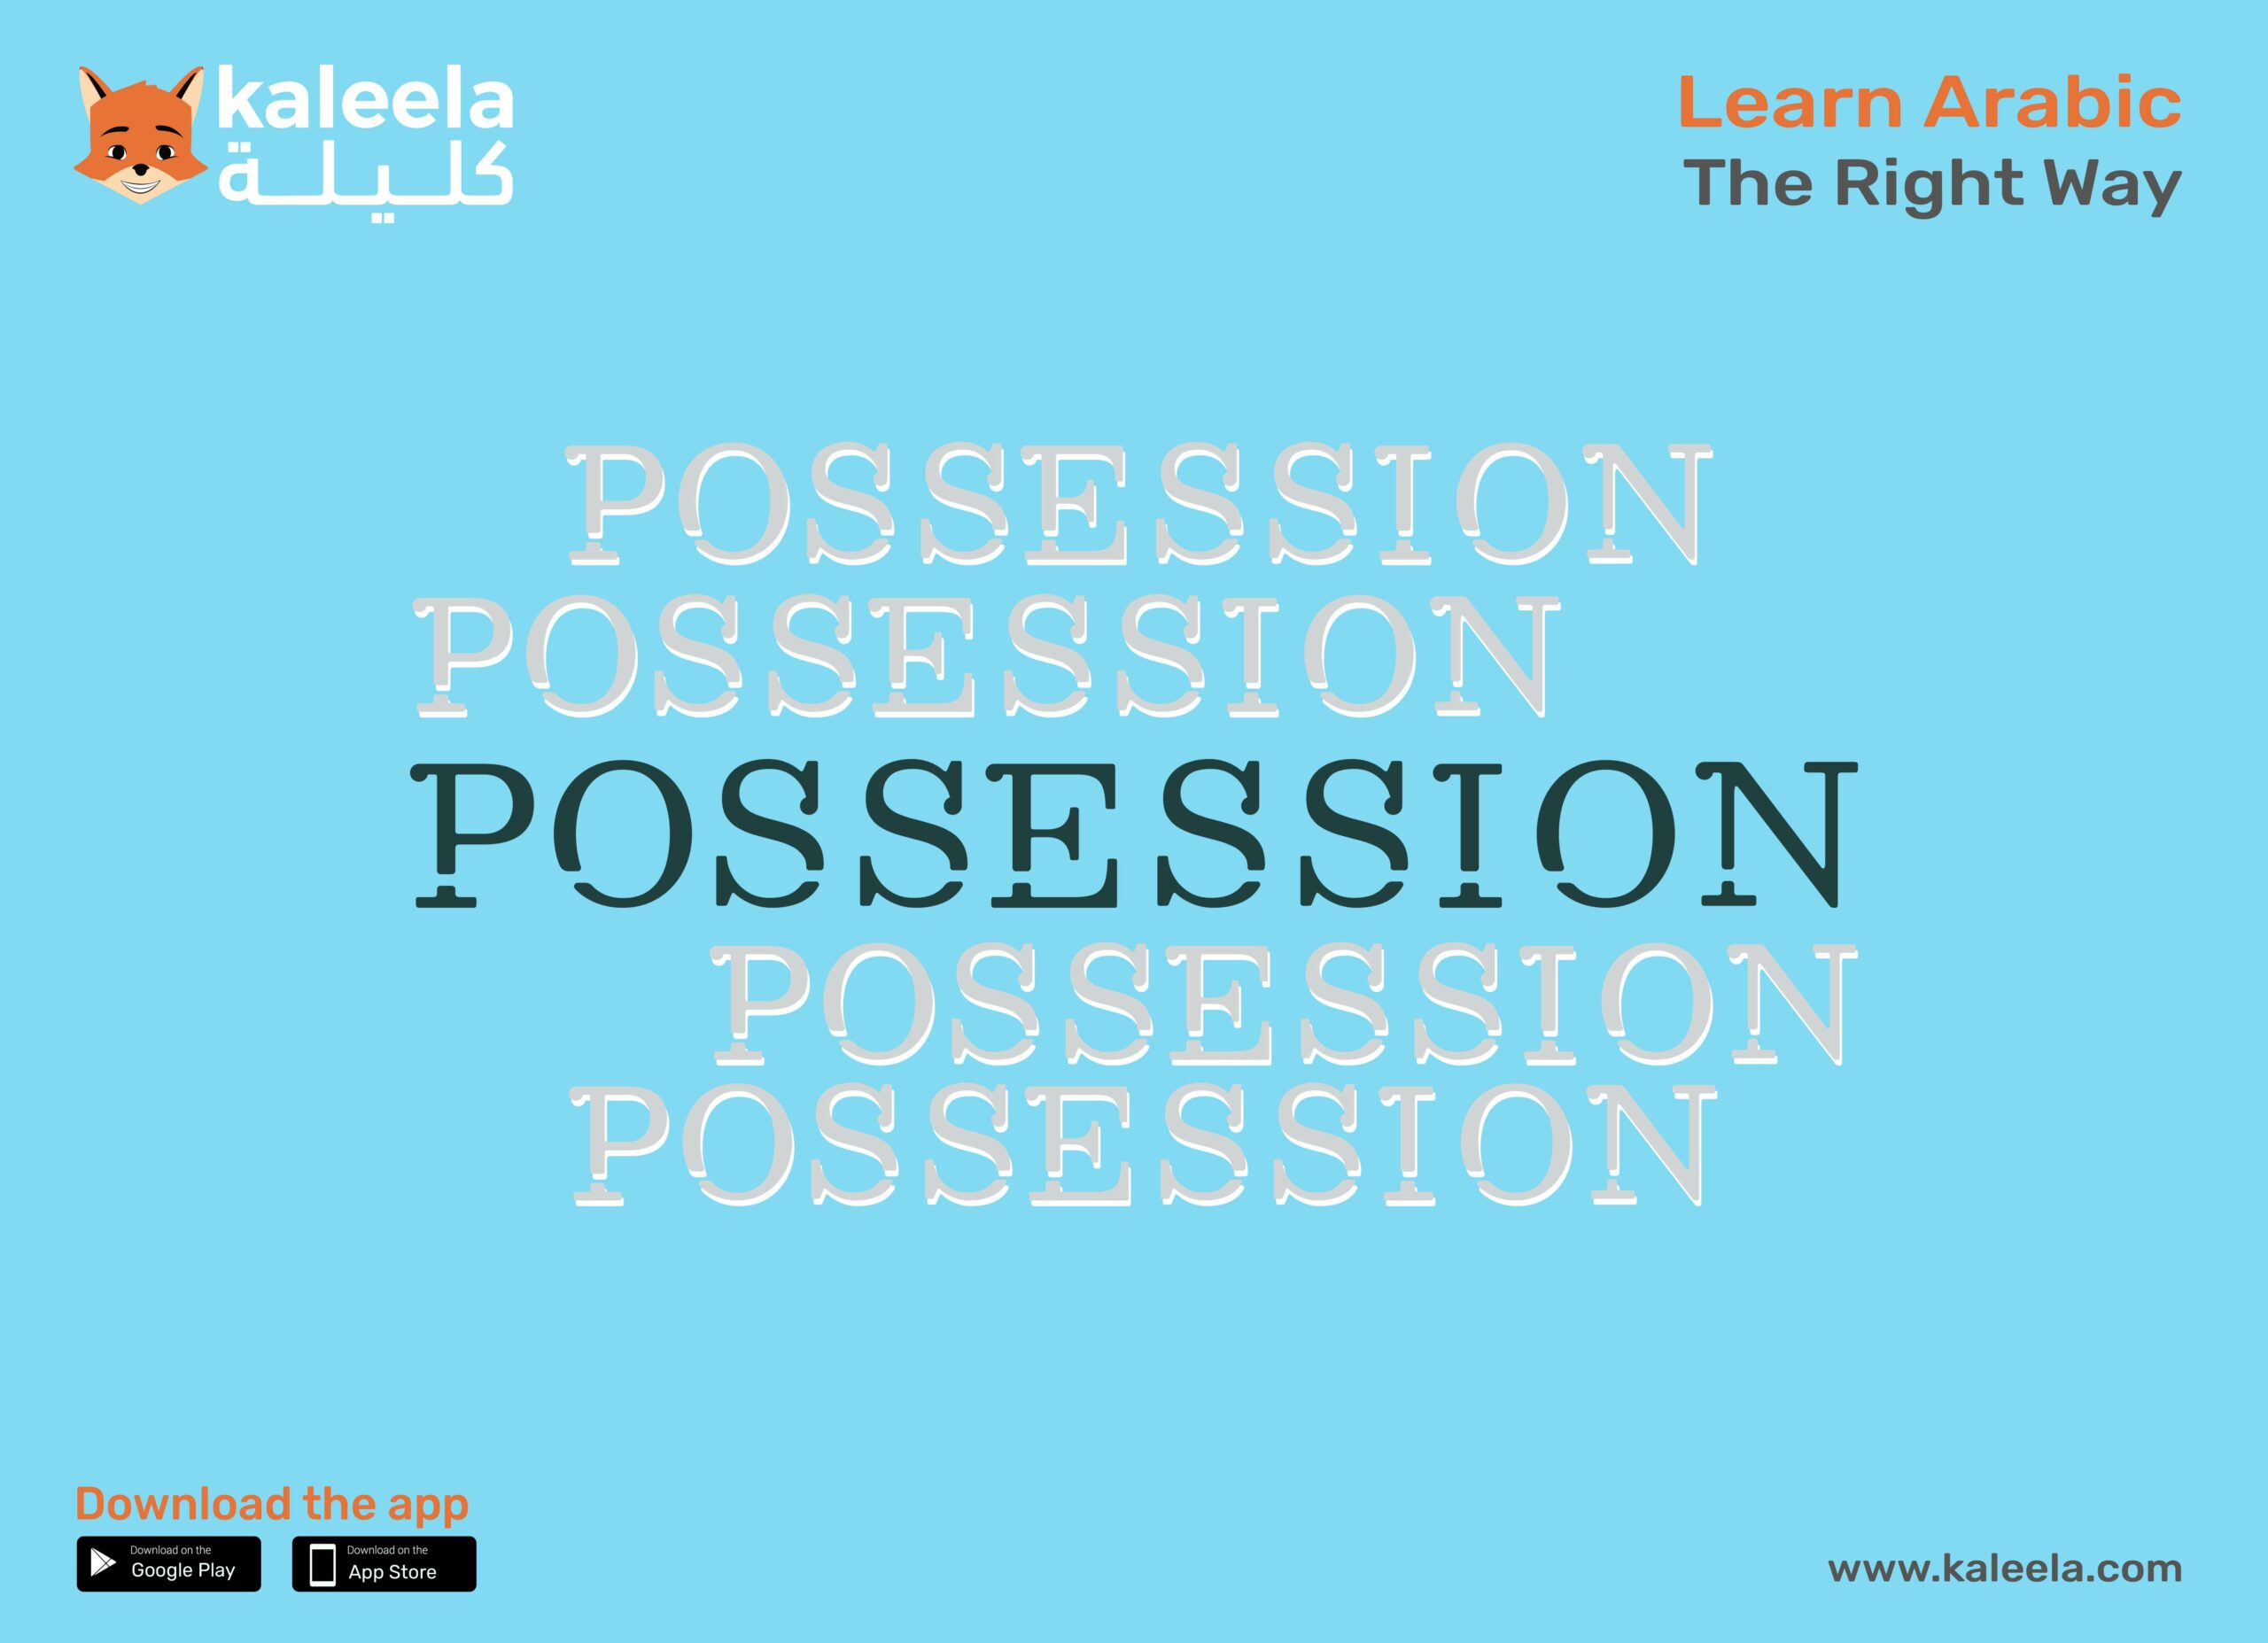 Today we'll show you how to let people know who owns what. We're talking about possessions and how to create them with the mighty idaafa!